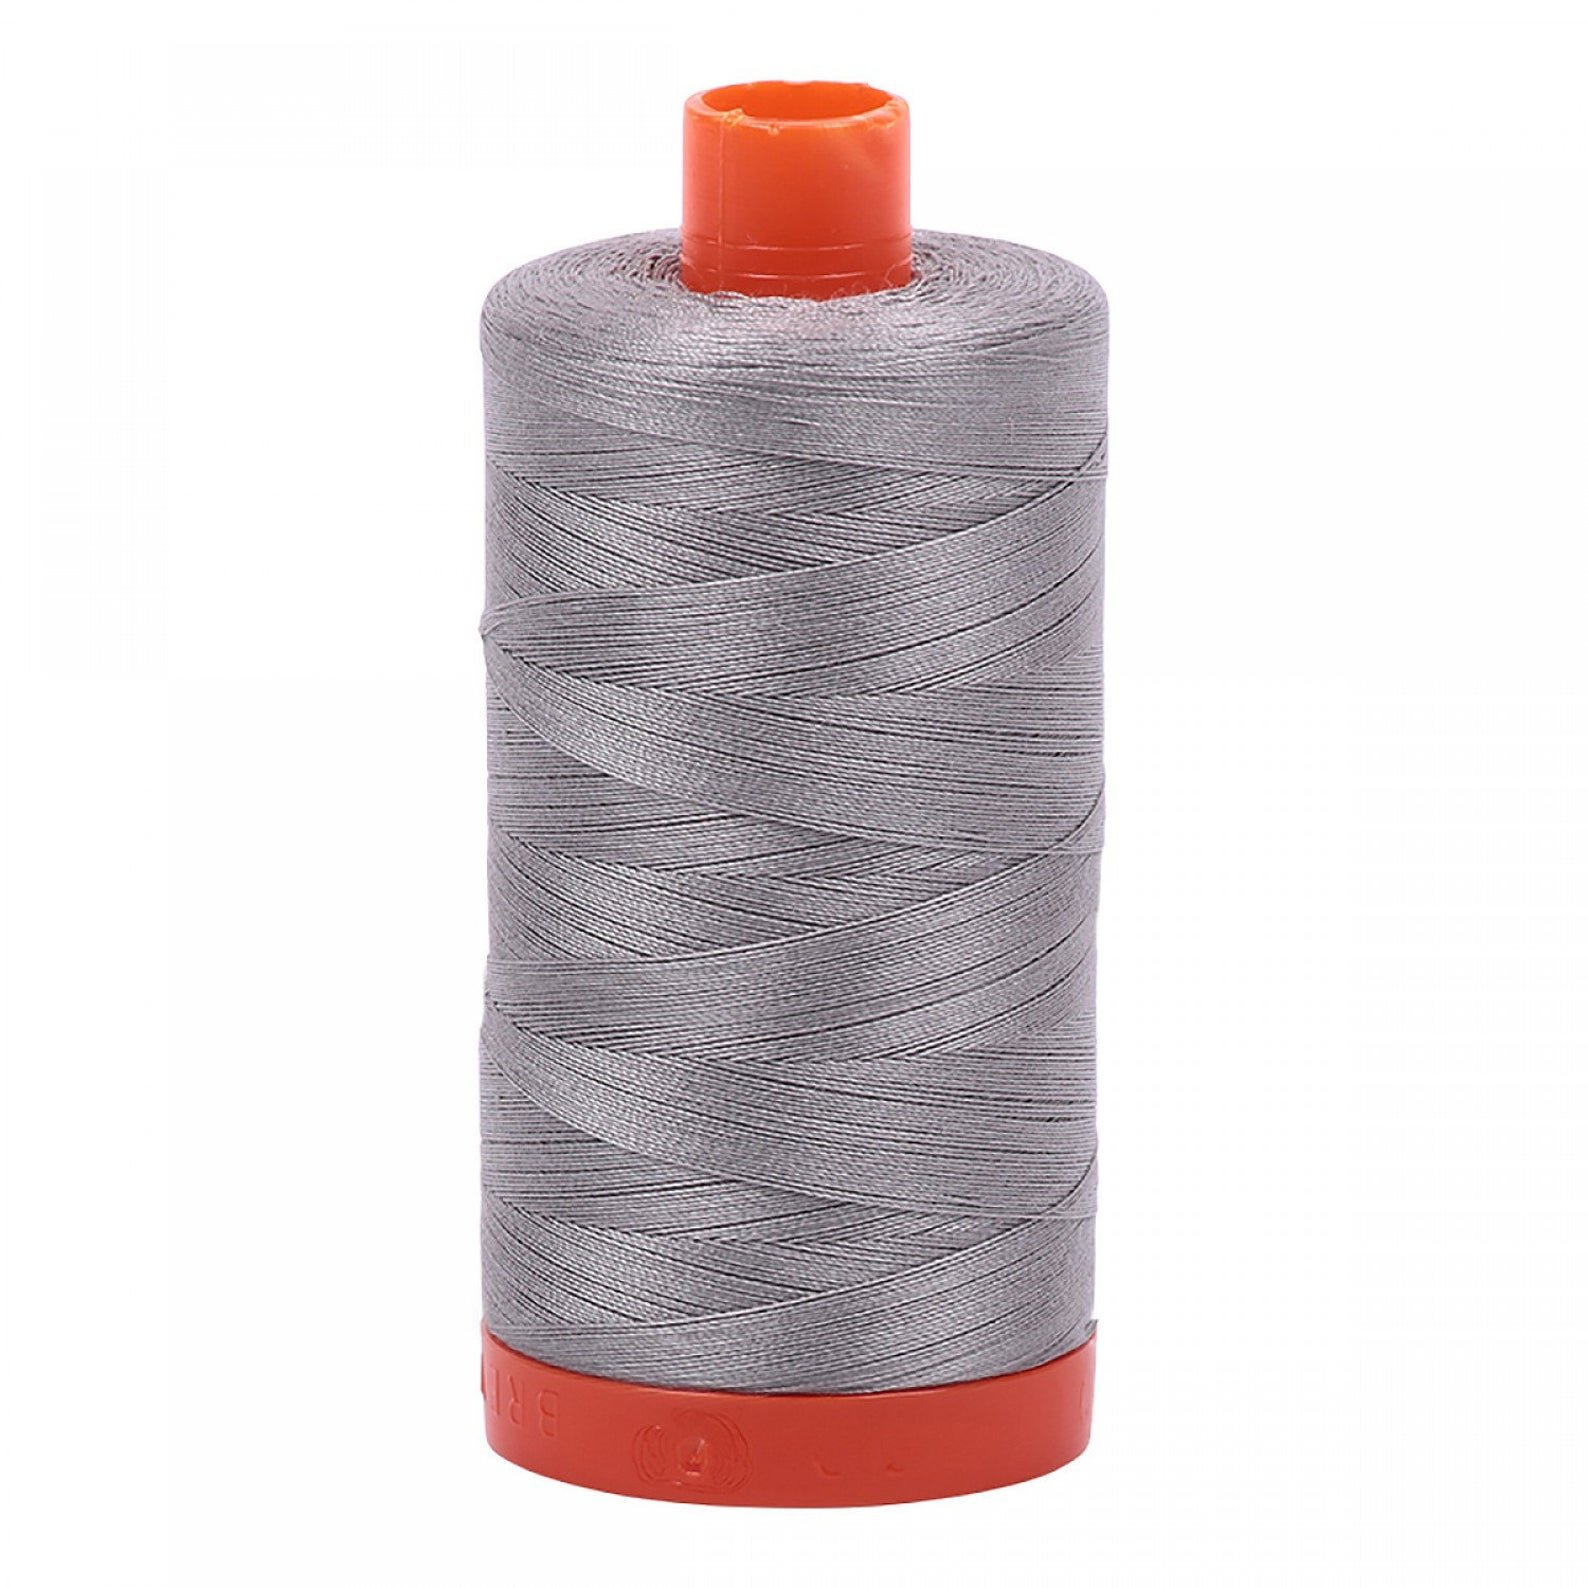 Aurifil Thread Mako 50wt 1300m (Stainless Steel)